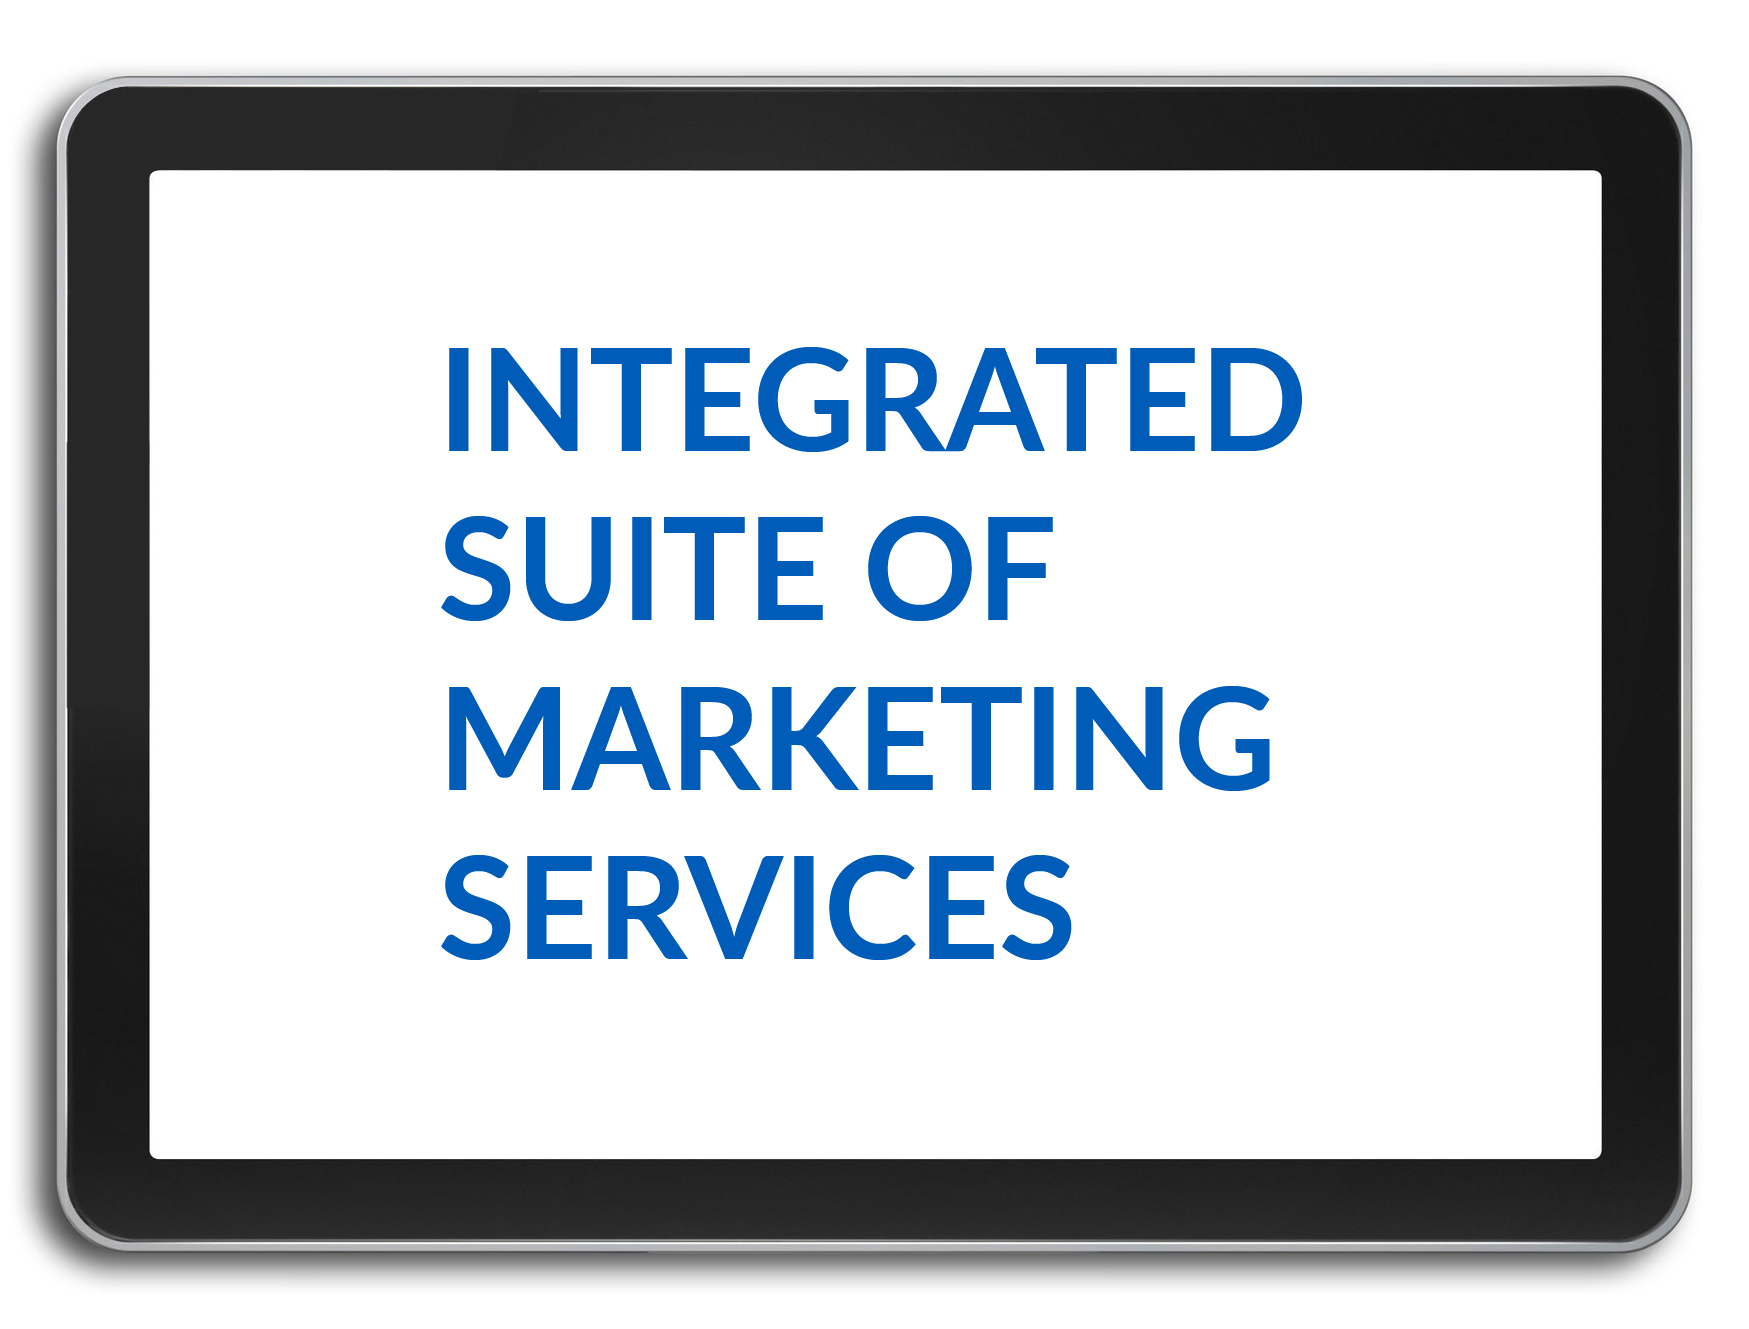 integrated suite of marketing services